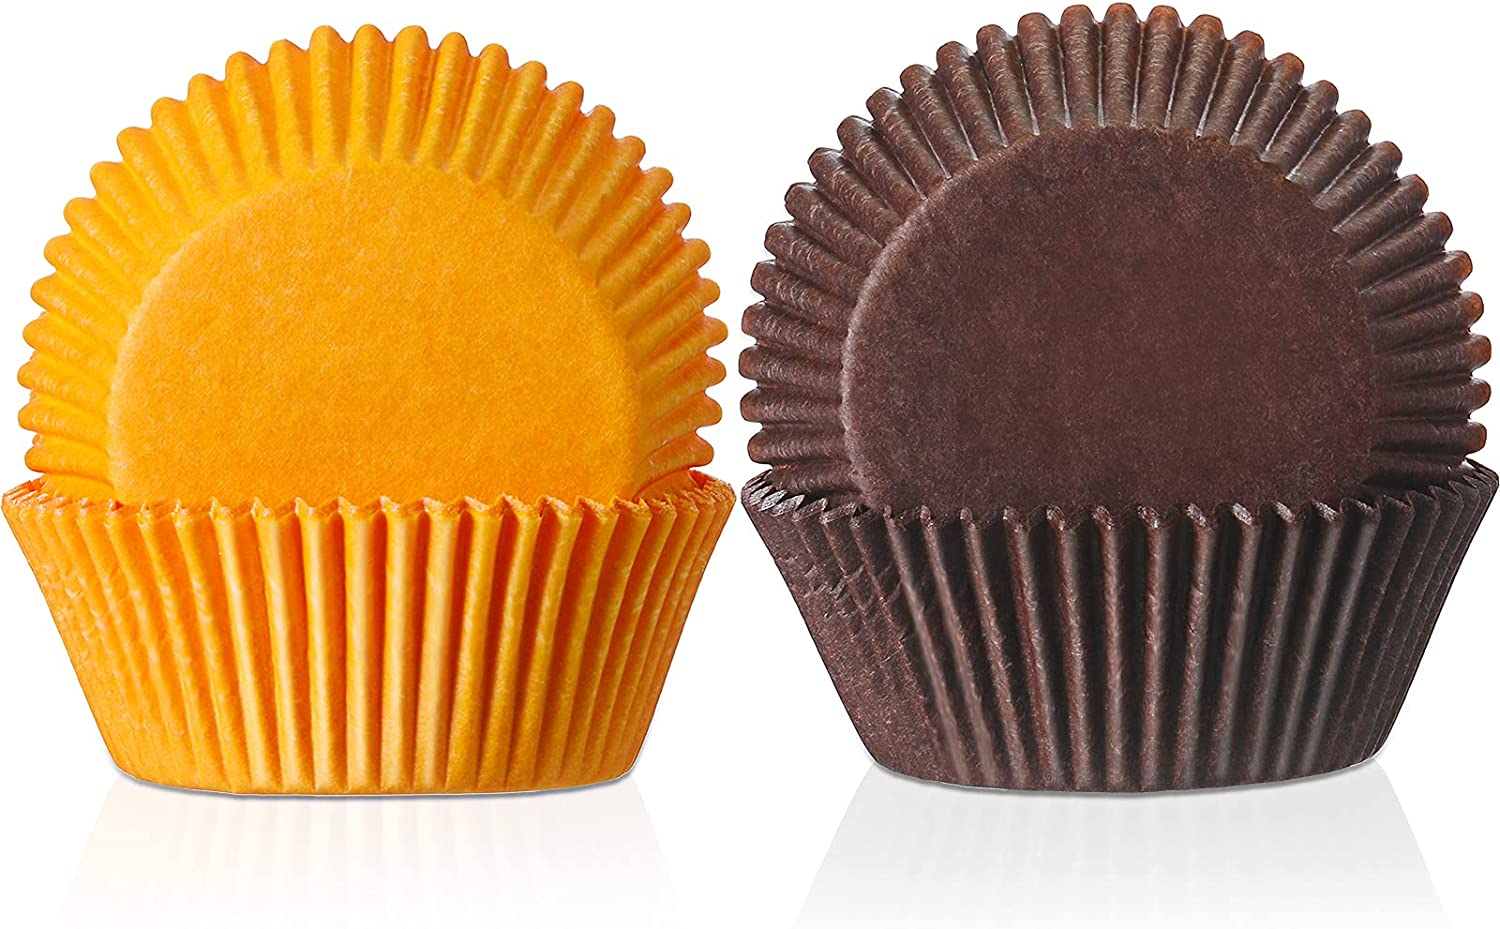 40 Pieces Baking Indefinitely Large-scale sale Cups Cupcake Brown Ho and Liners Orange